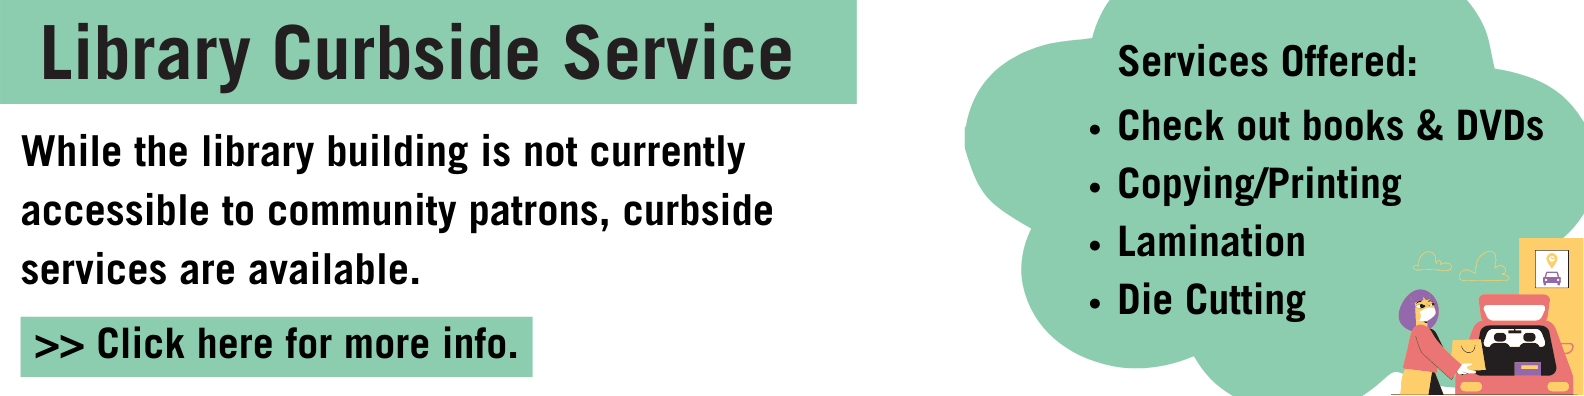 curbside service link